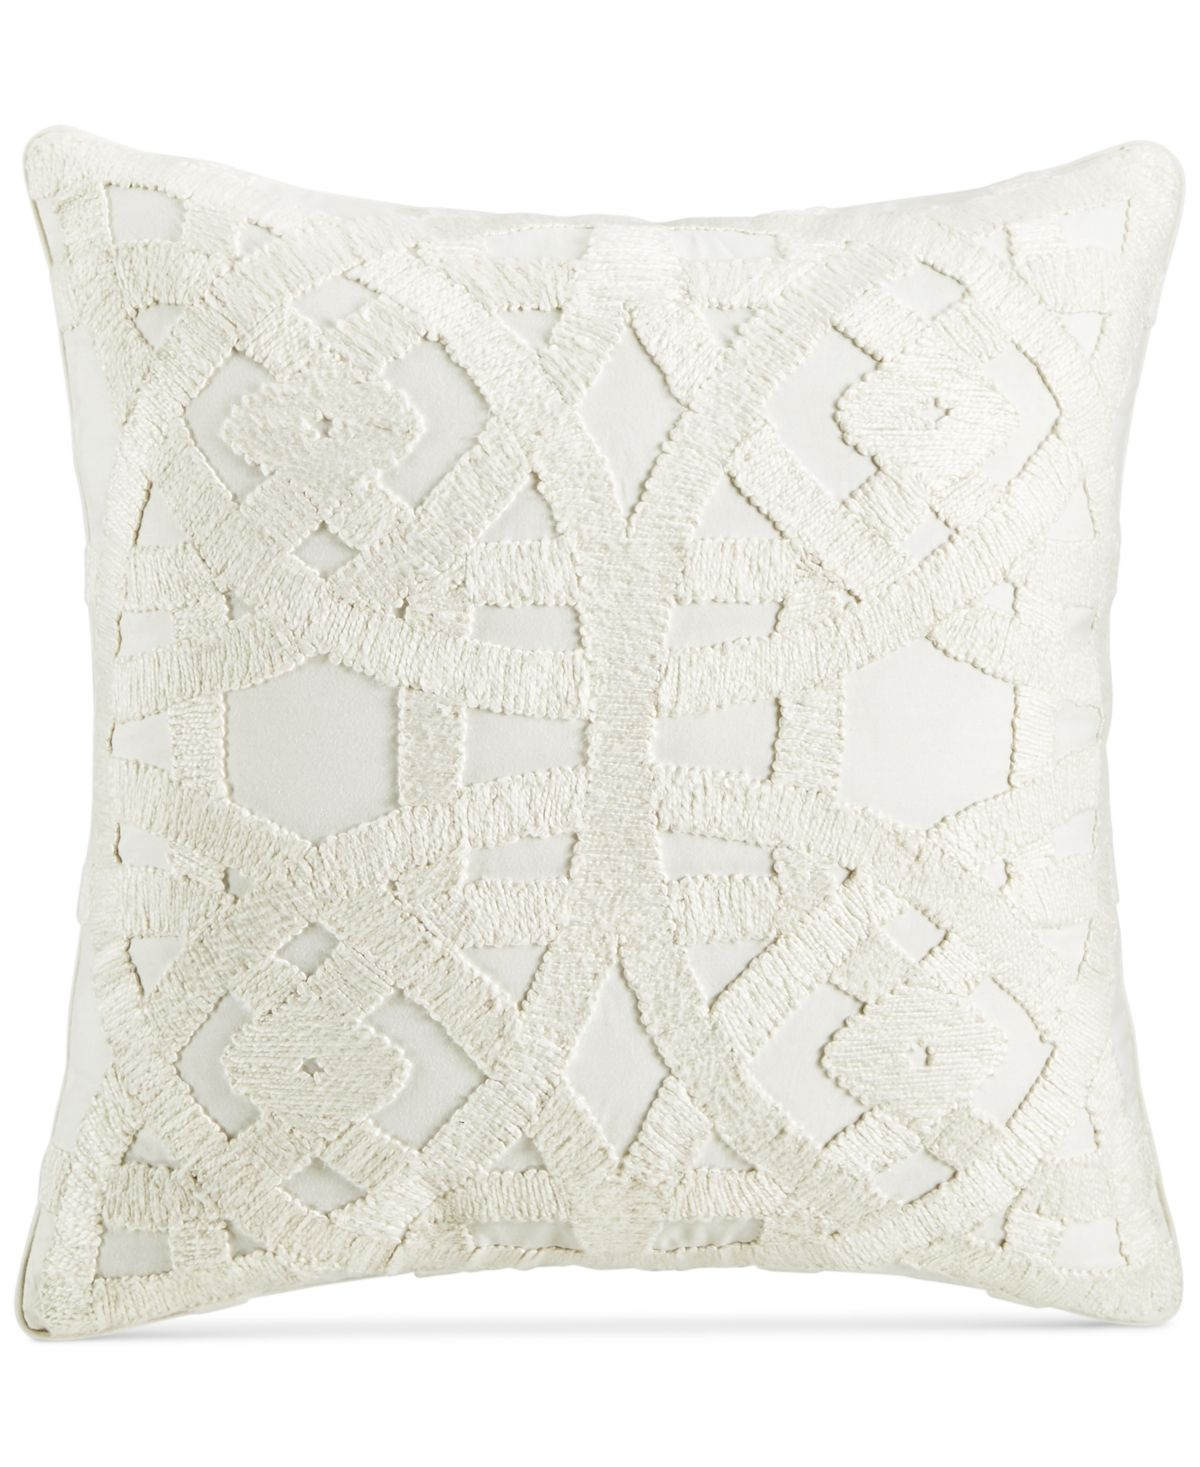 Hotel Collection Trousseau 22 Square Decorative Pillow Created